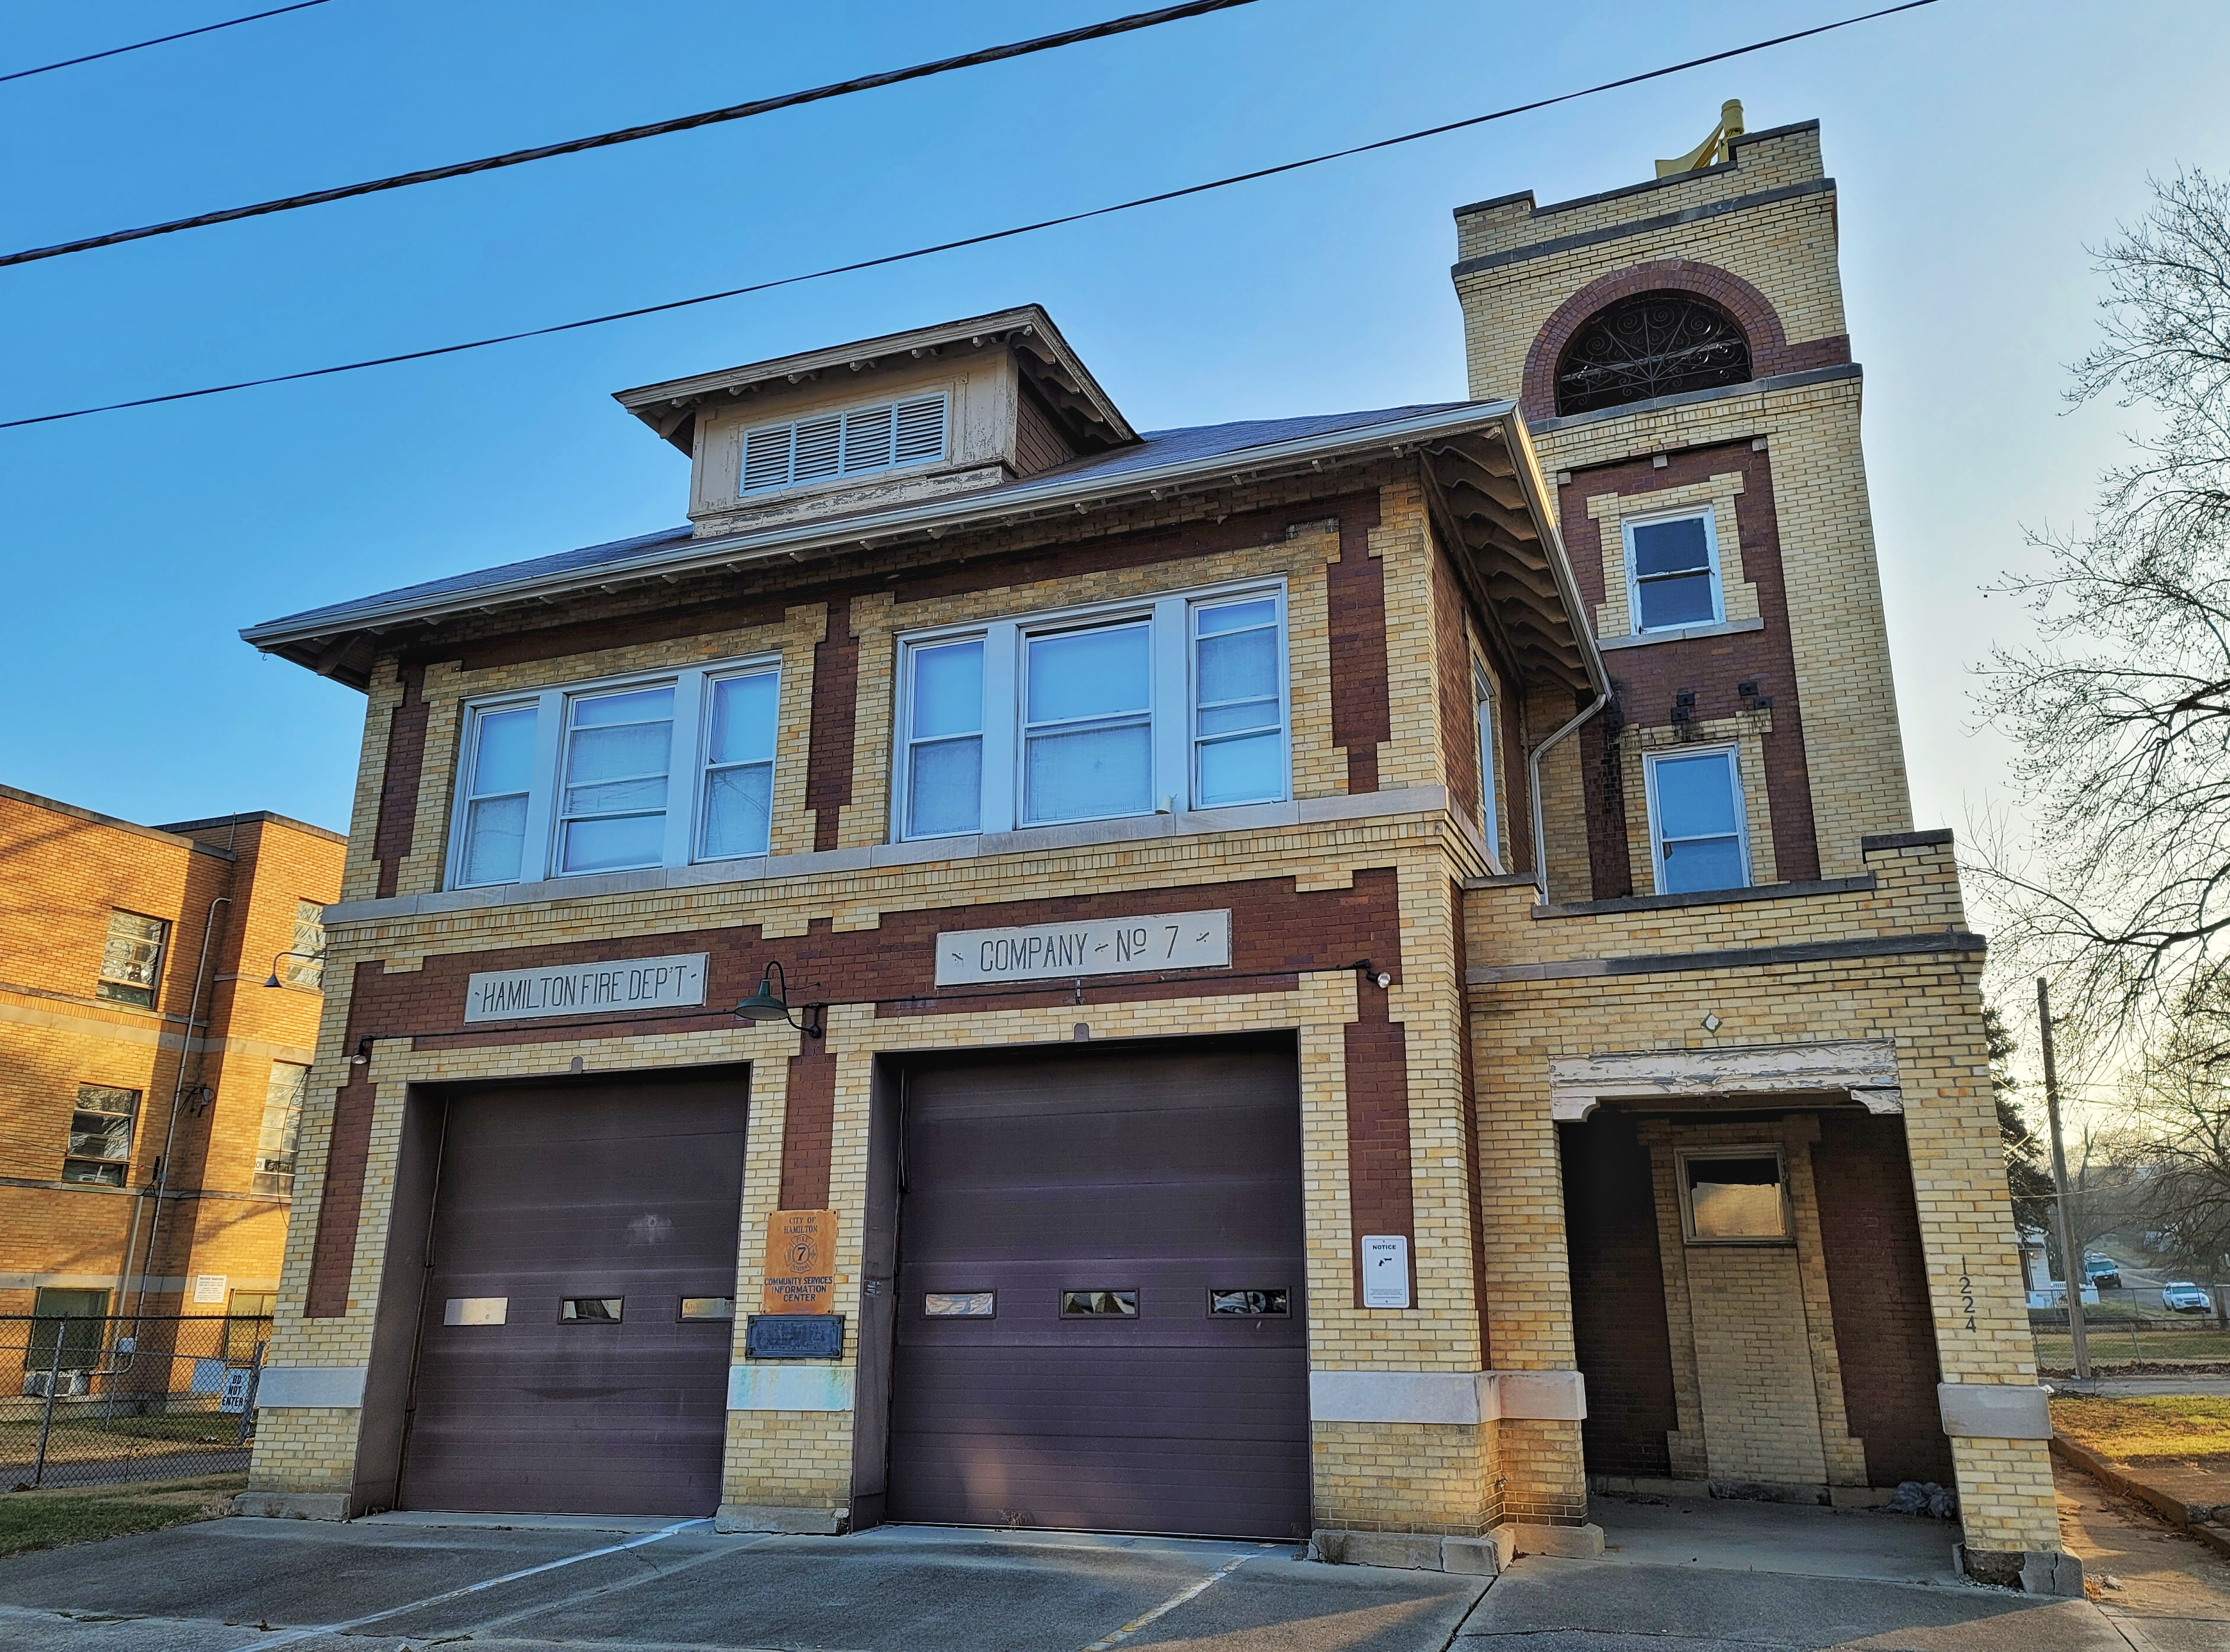 Historic Hamilton Firehouse Could Become New Home Or Business